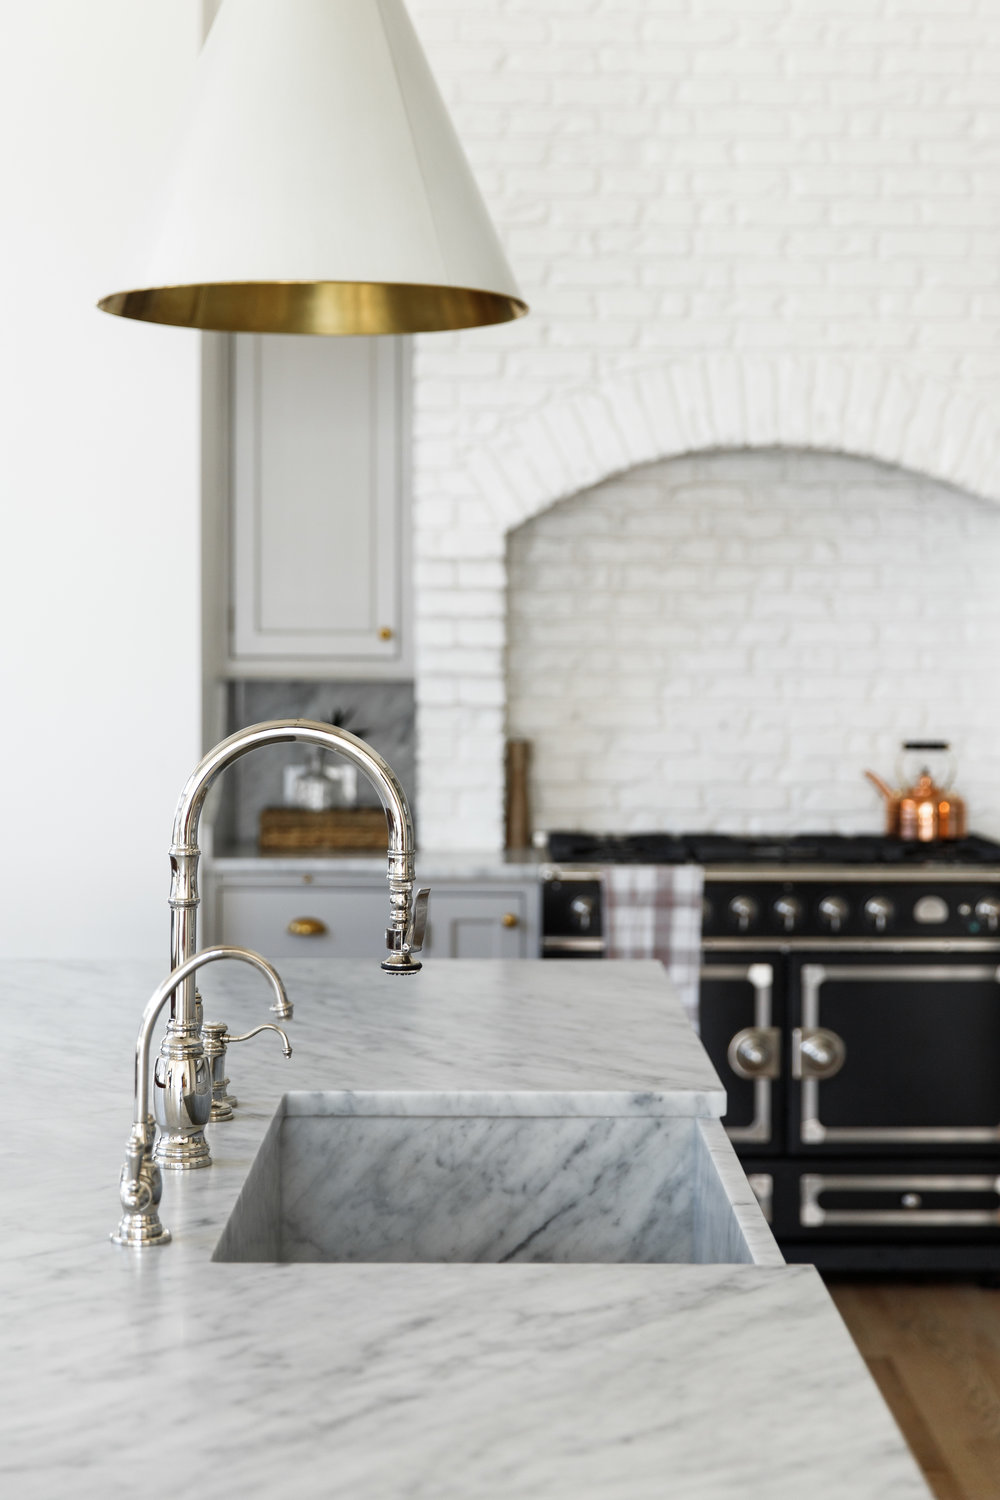 Light gray cabinets with gold hardware, LaCornue range and full height honed Carrara Marble countertops, backsplash and apron front sink.